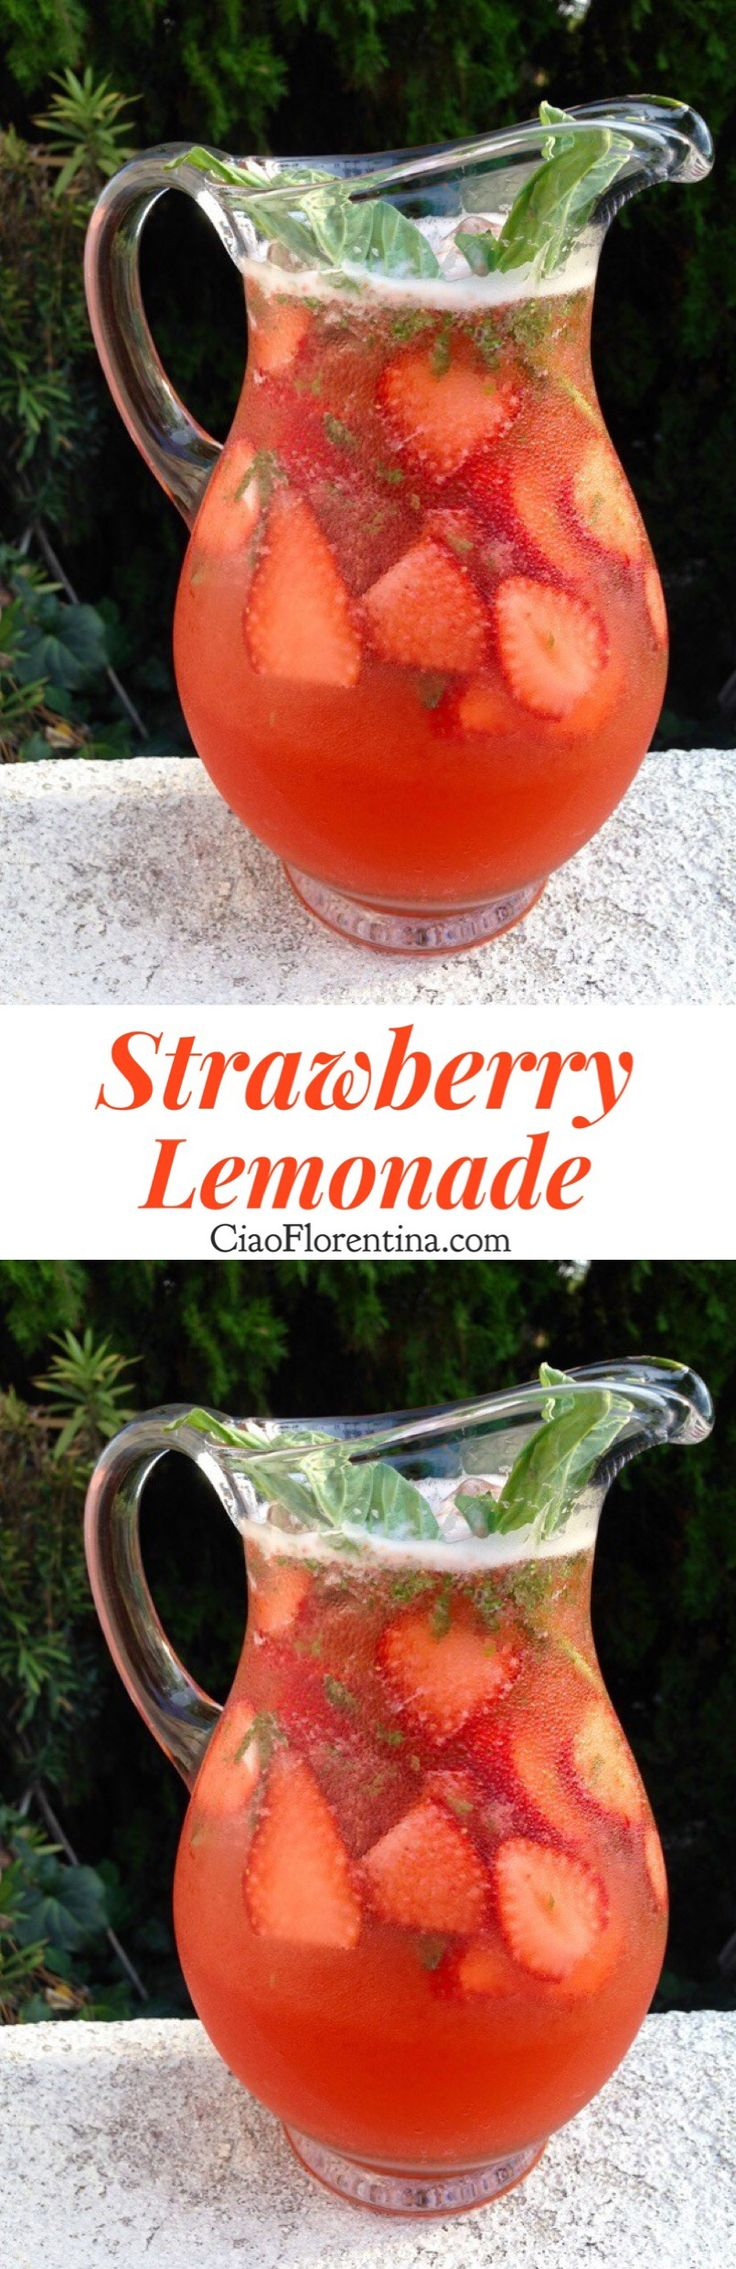 Strawberry Lemonade Come and see our new website at bakedcomfortfood.com!